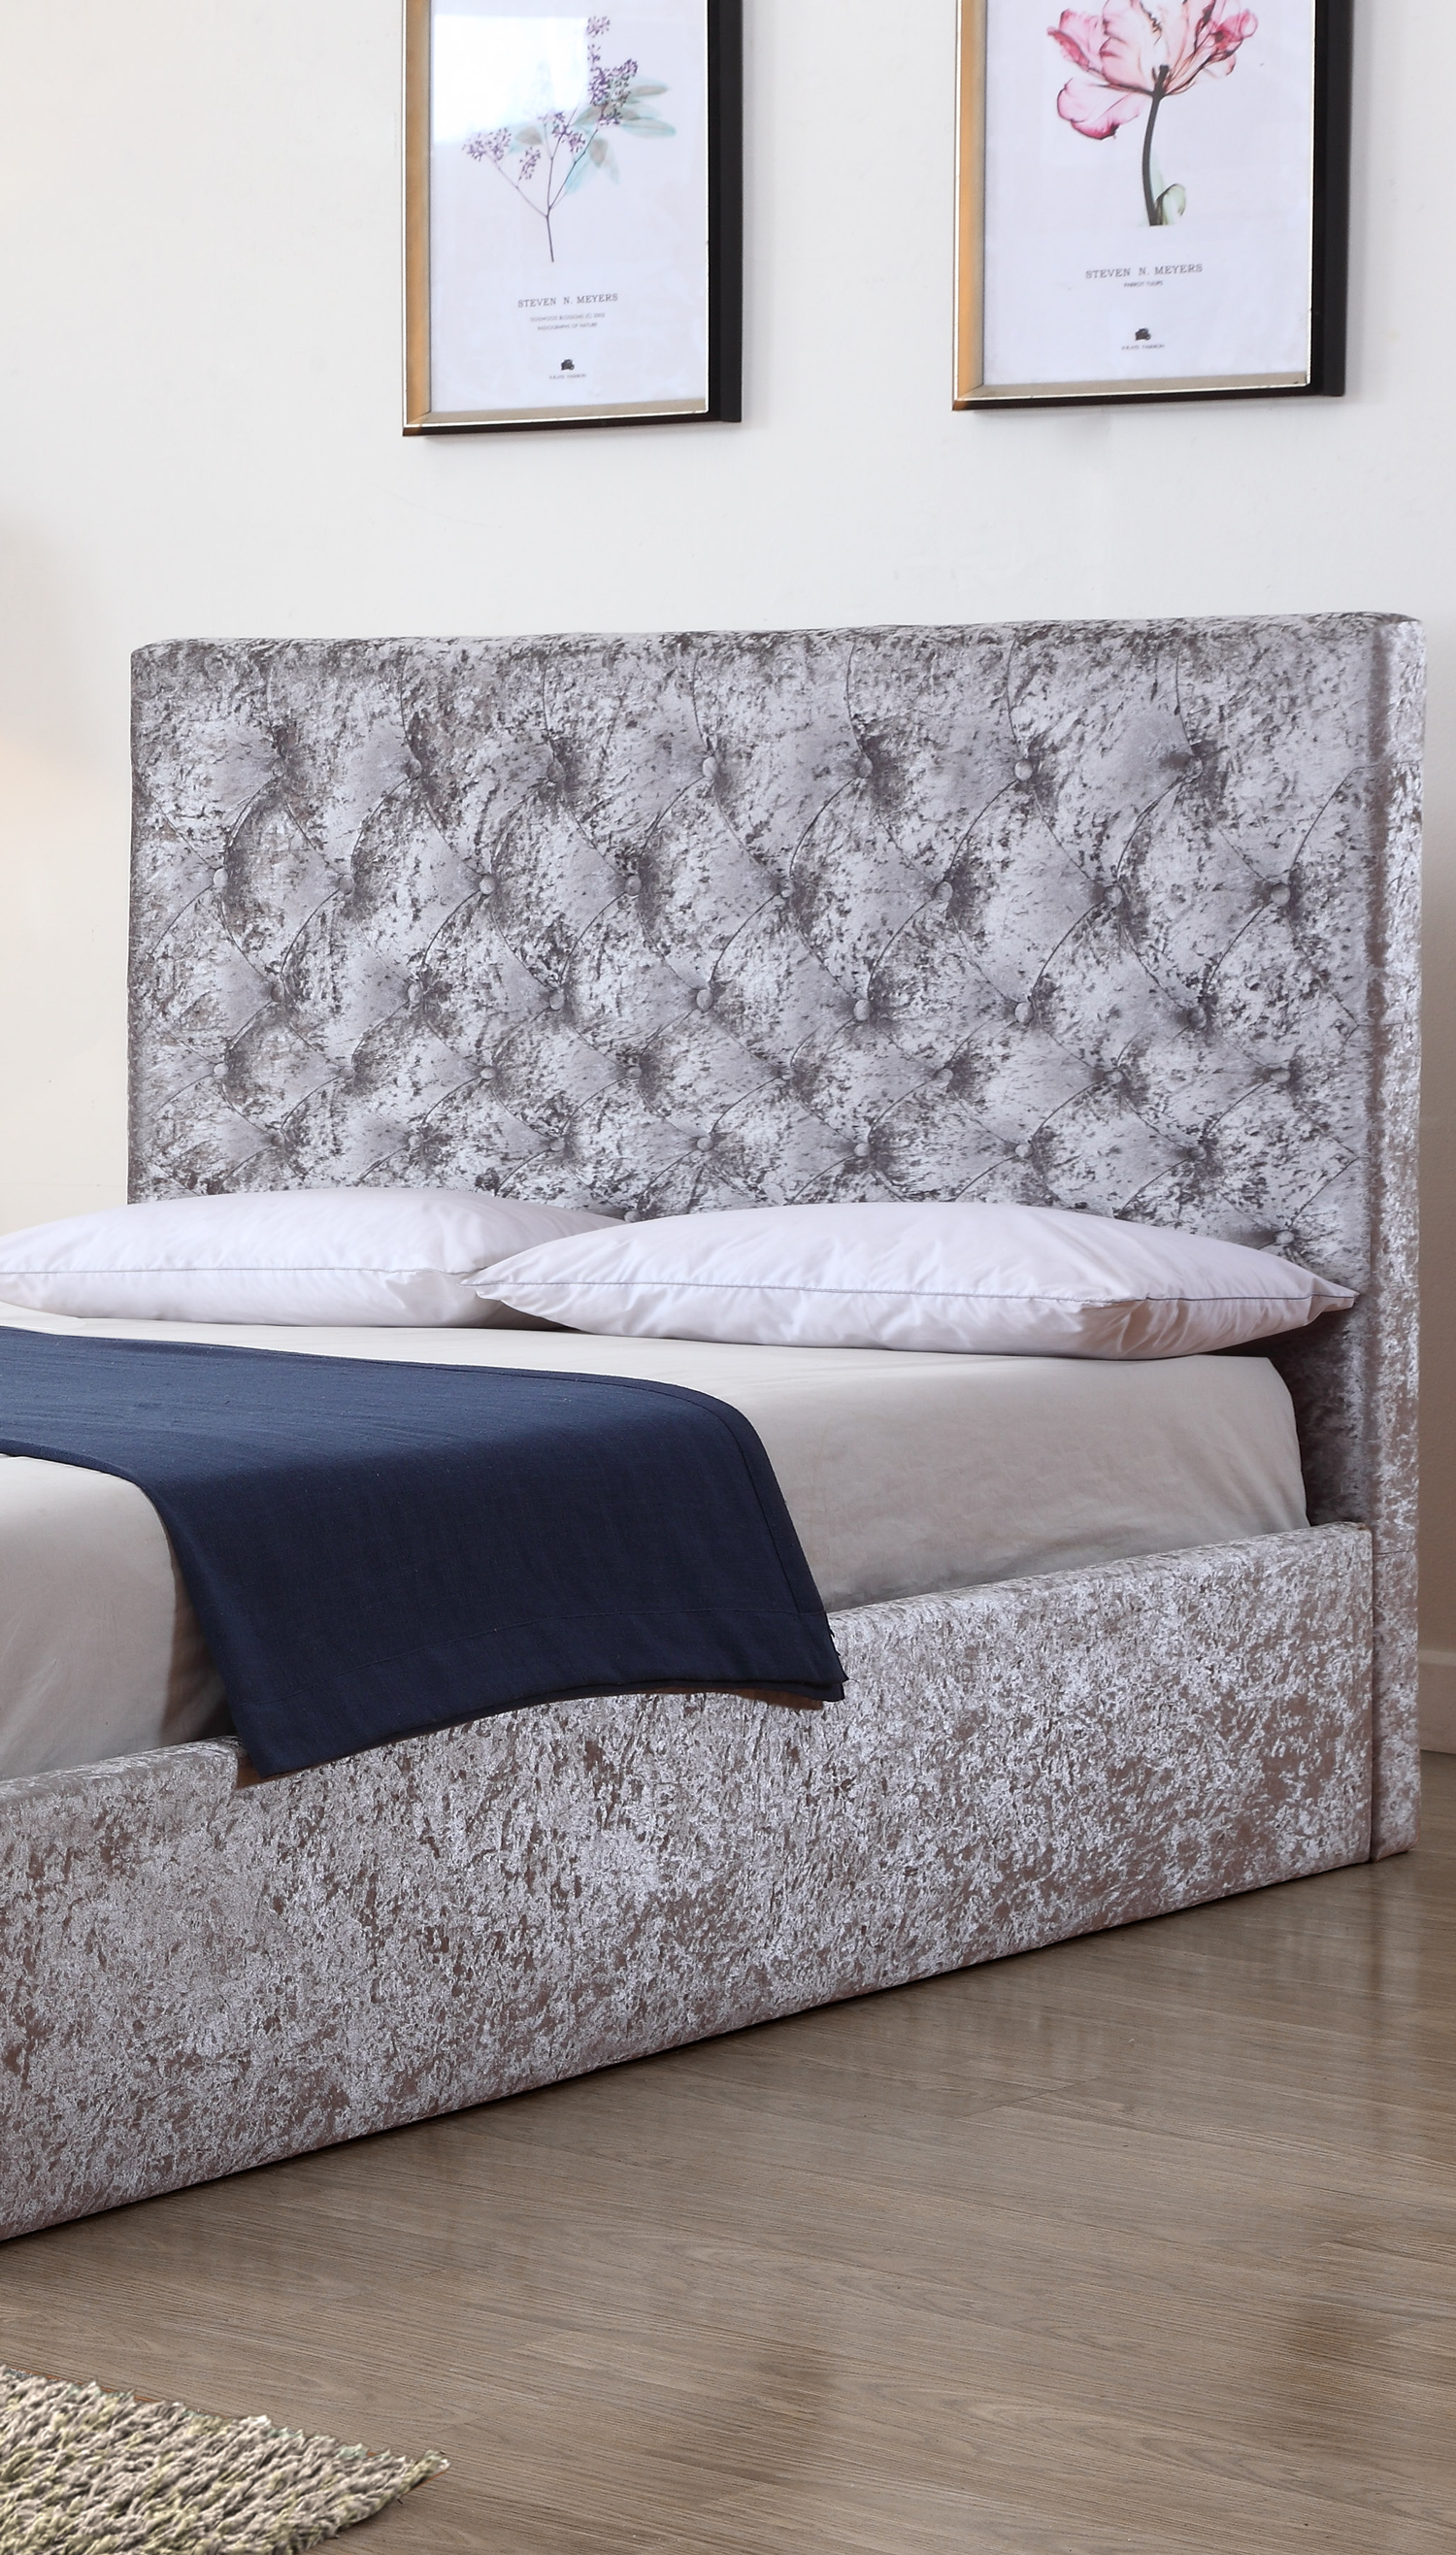 Marvelous Alsafi Ottoman Bed For The Home Ottoman Bed Bed Bed Creativecarmelina Interior Chair Design Creativecarmelinacom